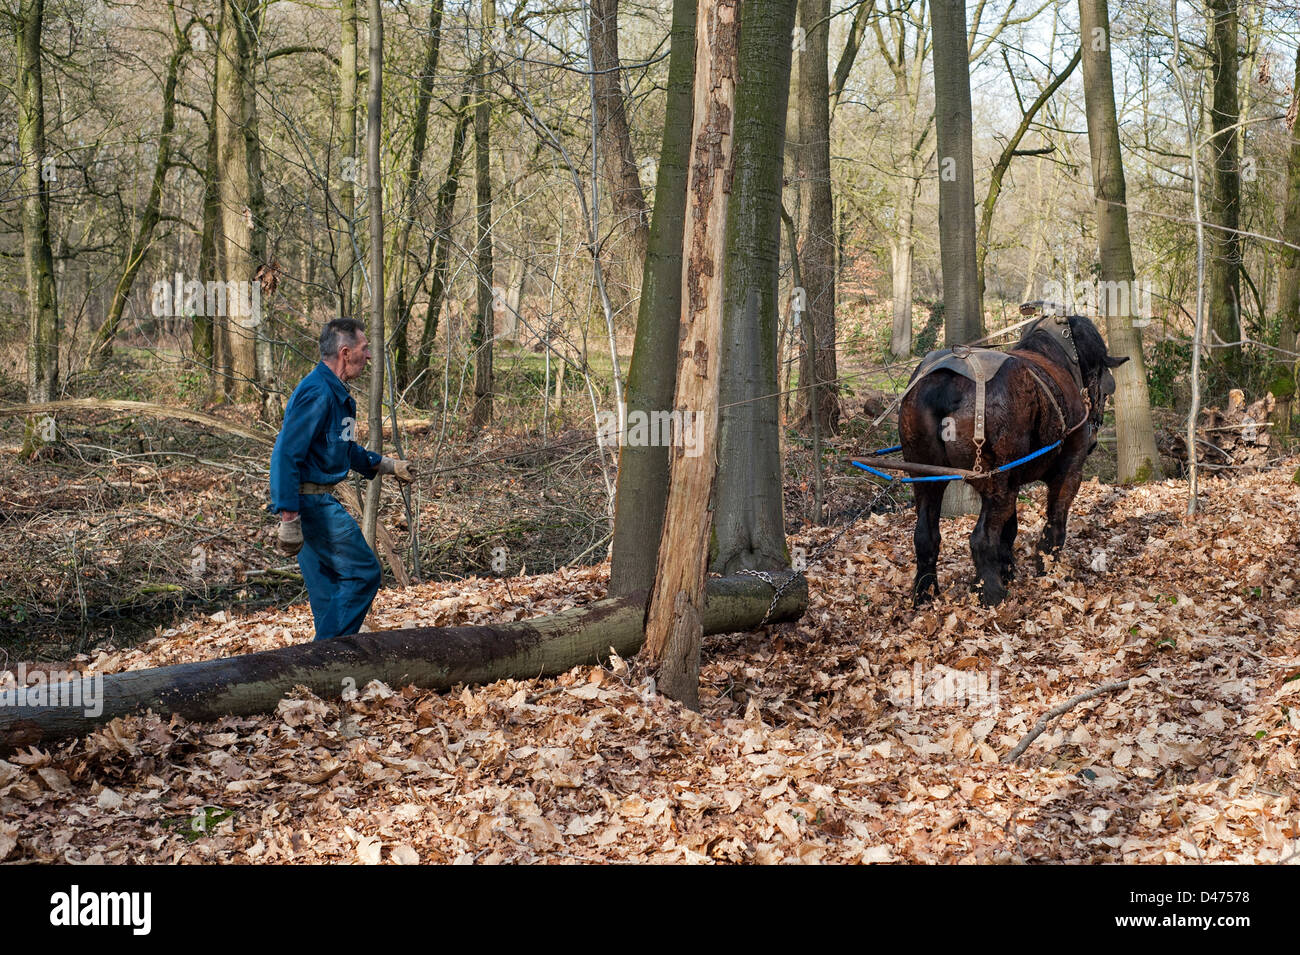 Forester dragging tree trunks / logs from forest with Belgian Draft horse / Brabant Heavy Horse (Equus caballus), - Stock Image